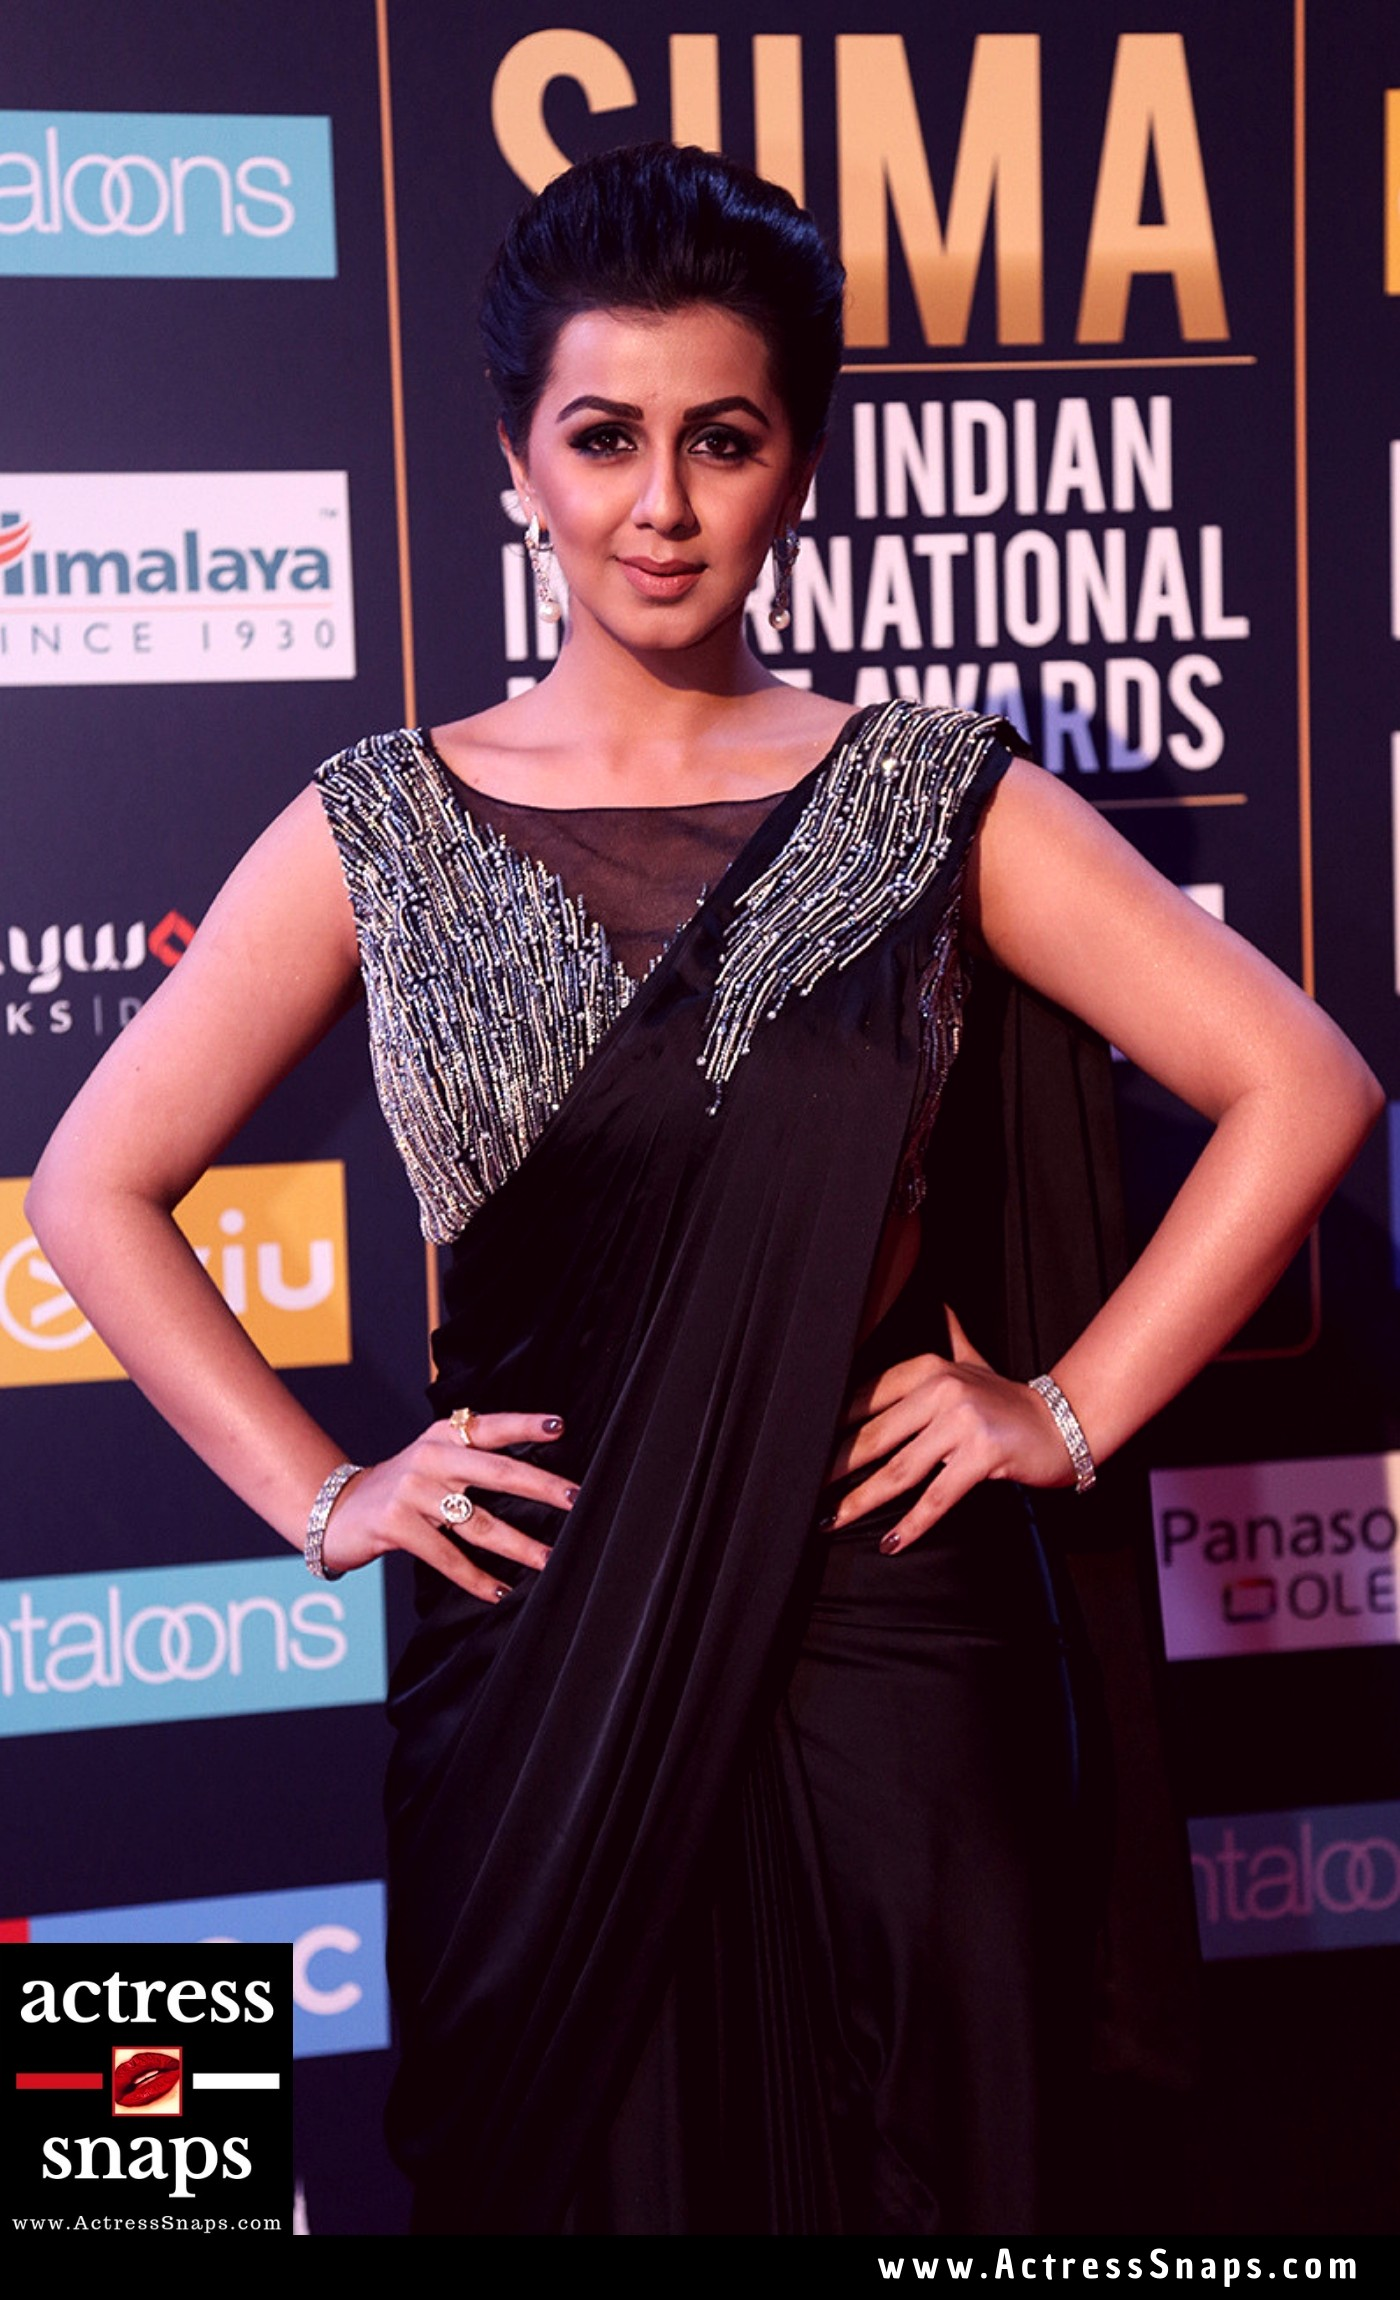 Beautiful Nikki Galrani at SIIMA Event Pictures - Sexy Actress Pictures | Hot Actress Pictures - ActressSnaps.com